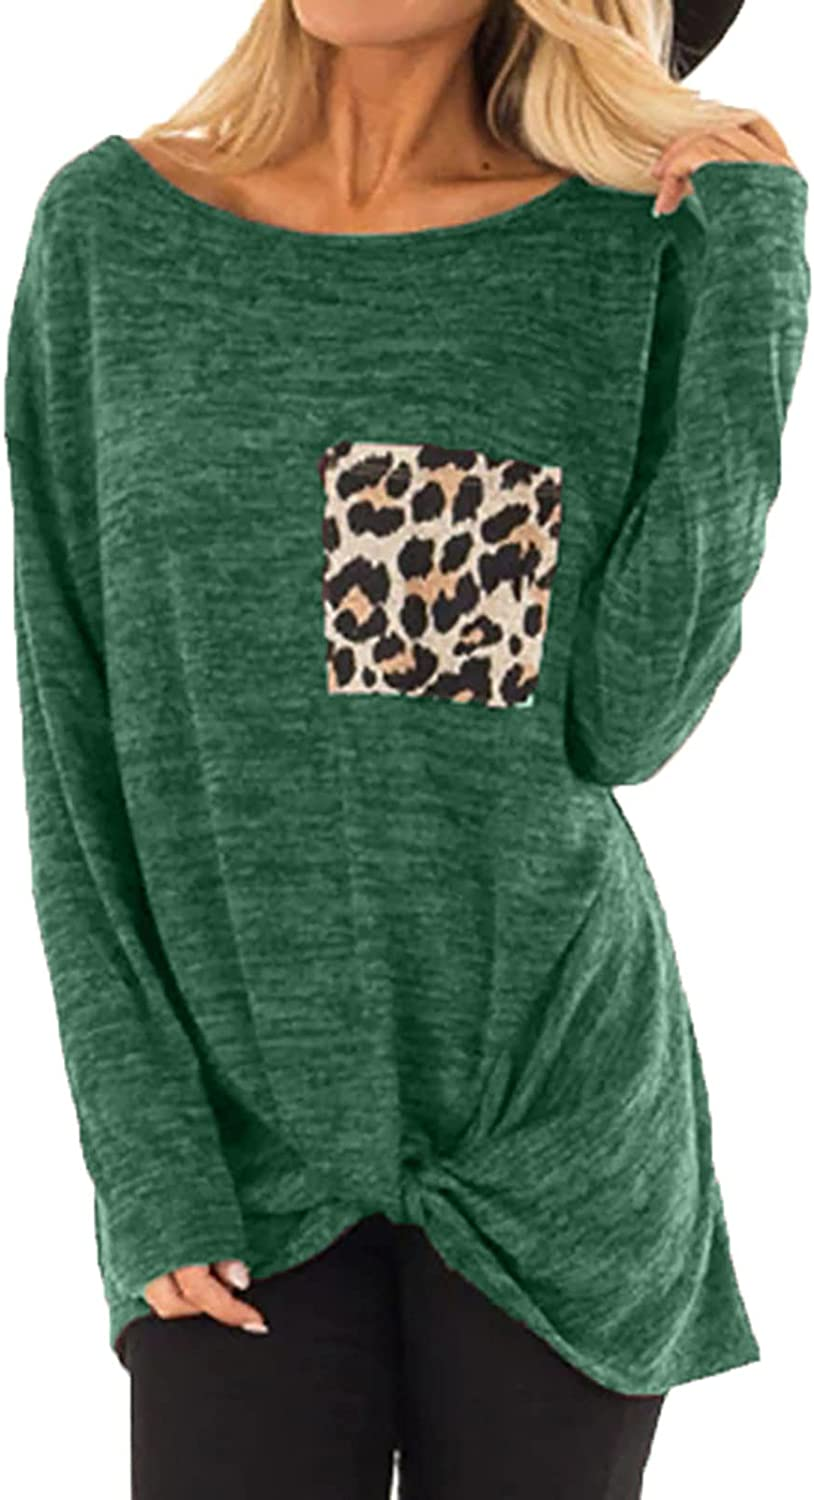 GOODTRADE8 Womens Long Sleeve Tops, Womens Casual Leopard Printed Pocket Front Knotted Tie Long Sleeve Top Blouse